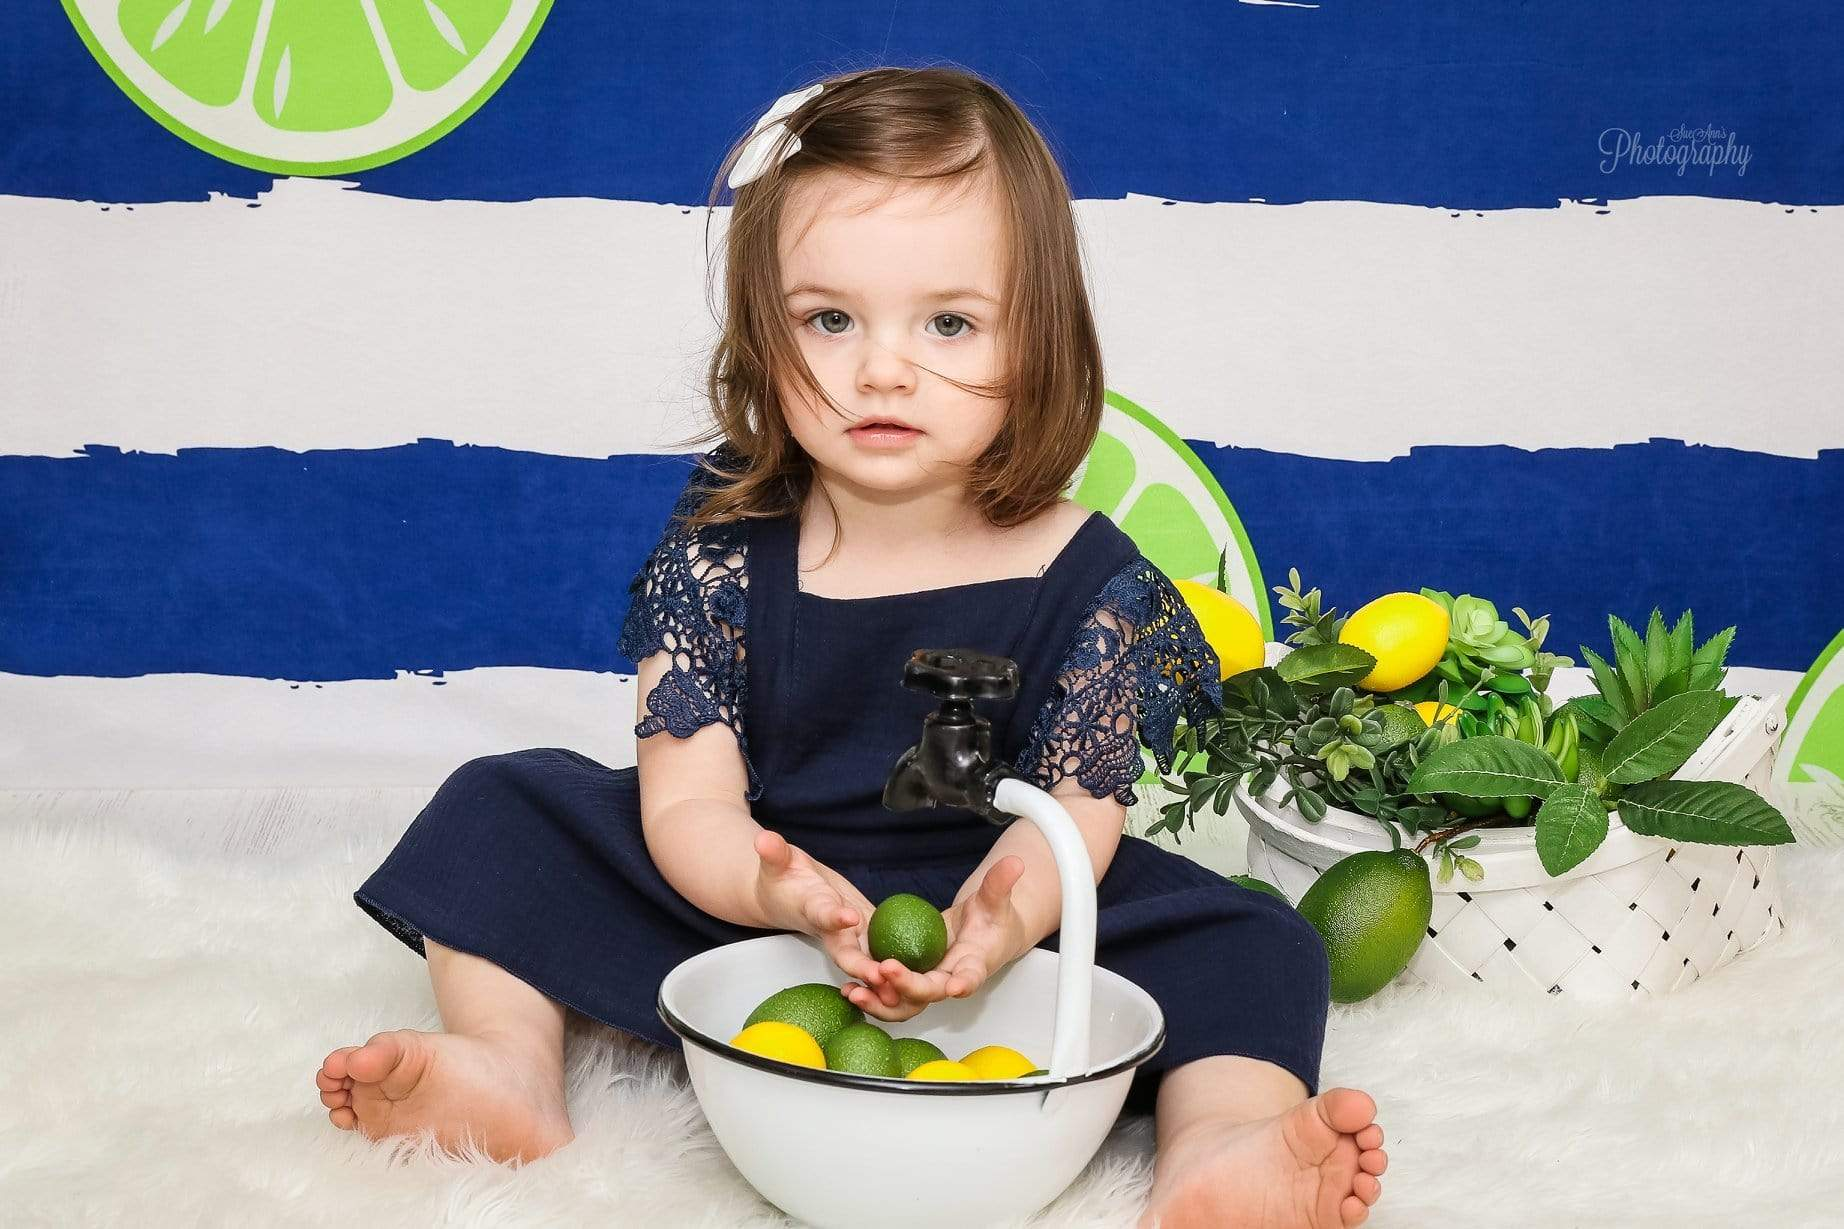 Load image into Gallery viewer, Katebackdrop£ºKate Lemons Blue and White Stripe Backdrop for Photography Summer Holiday Children